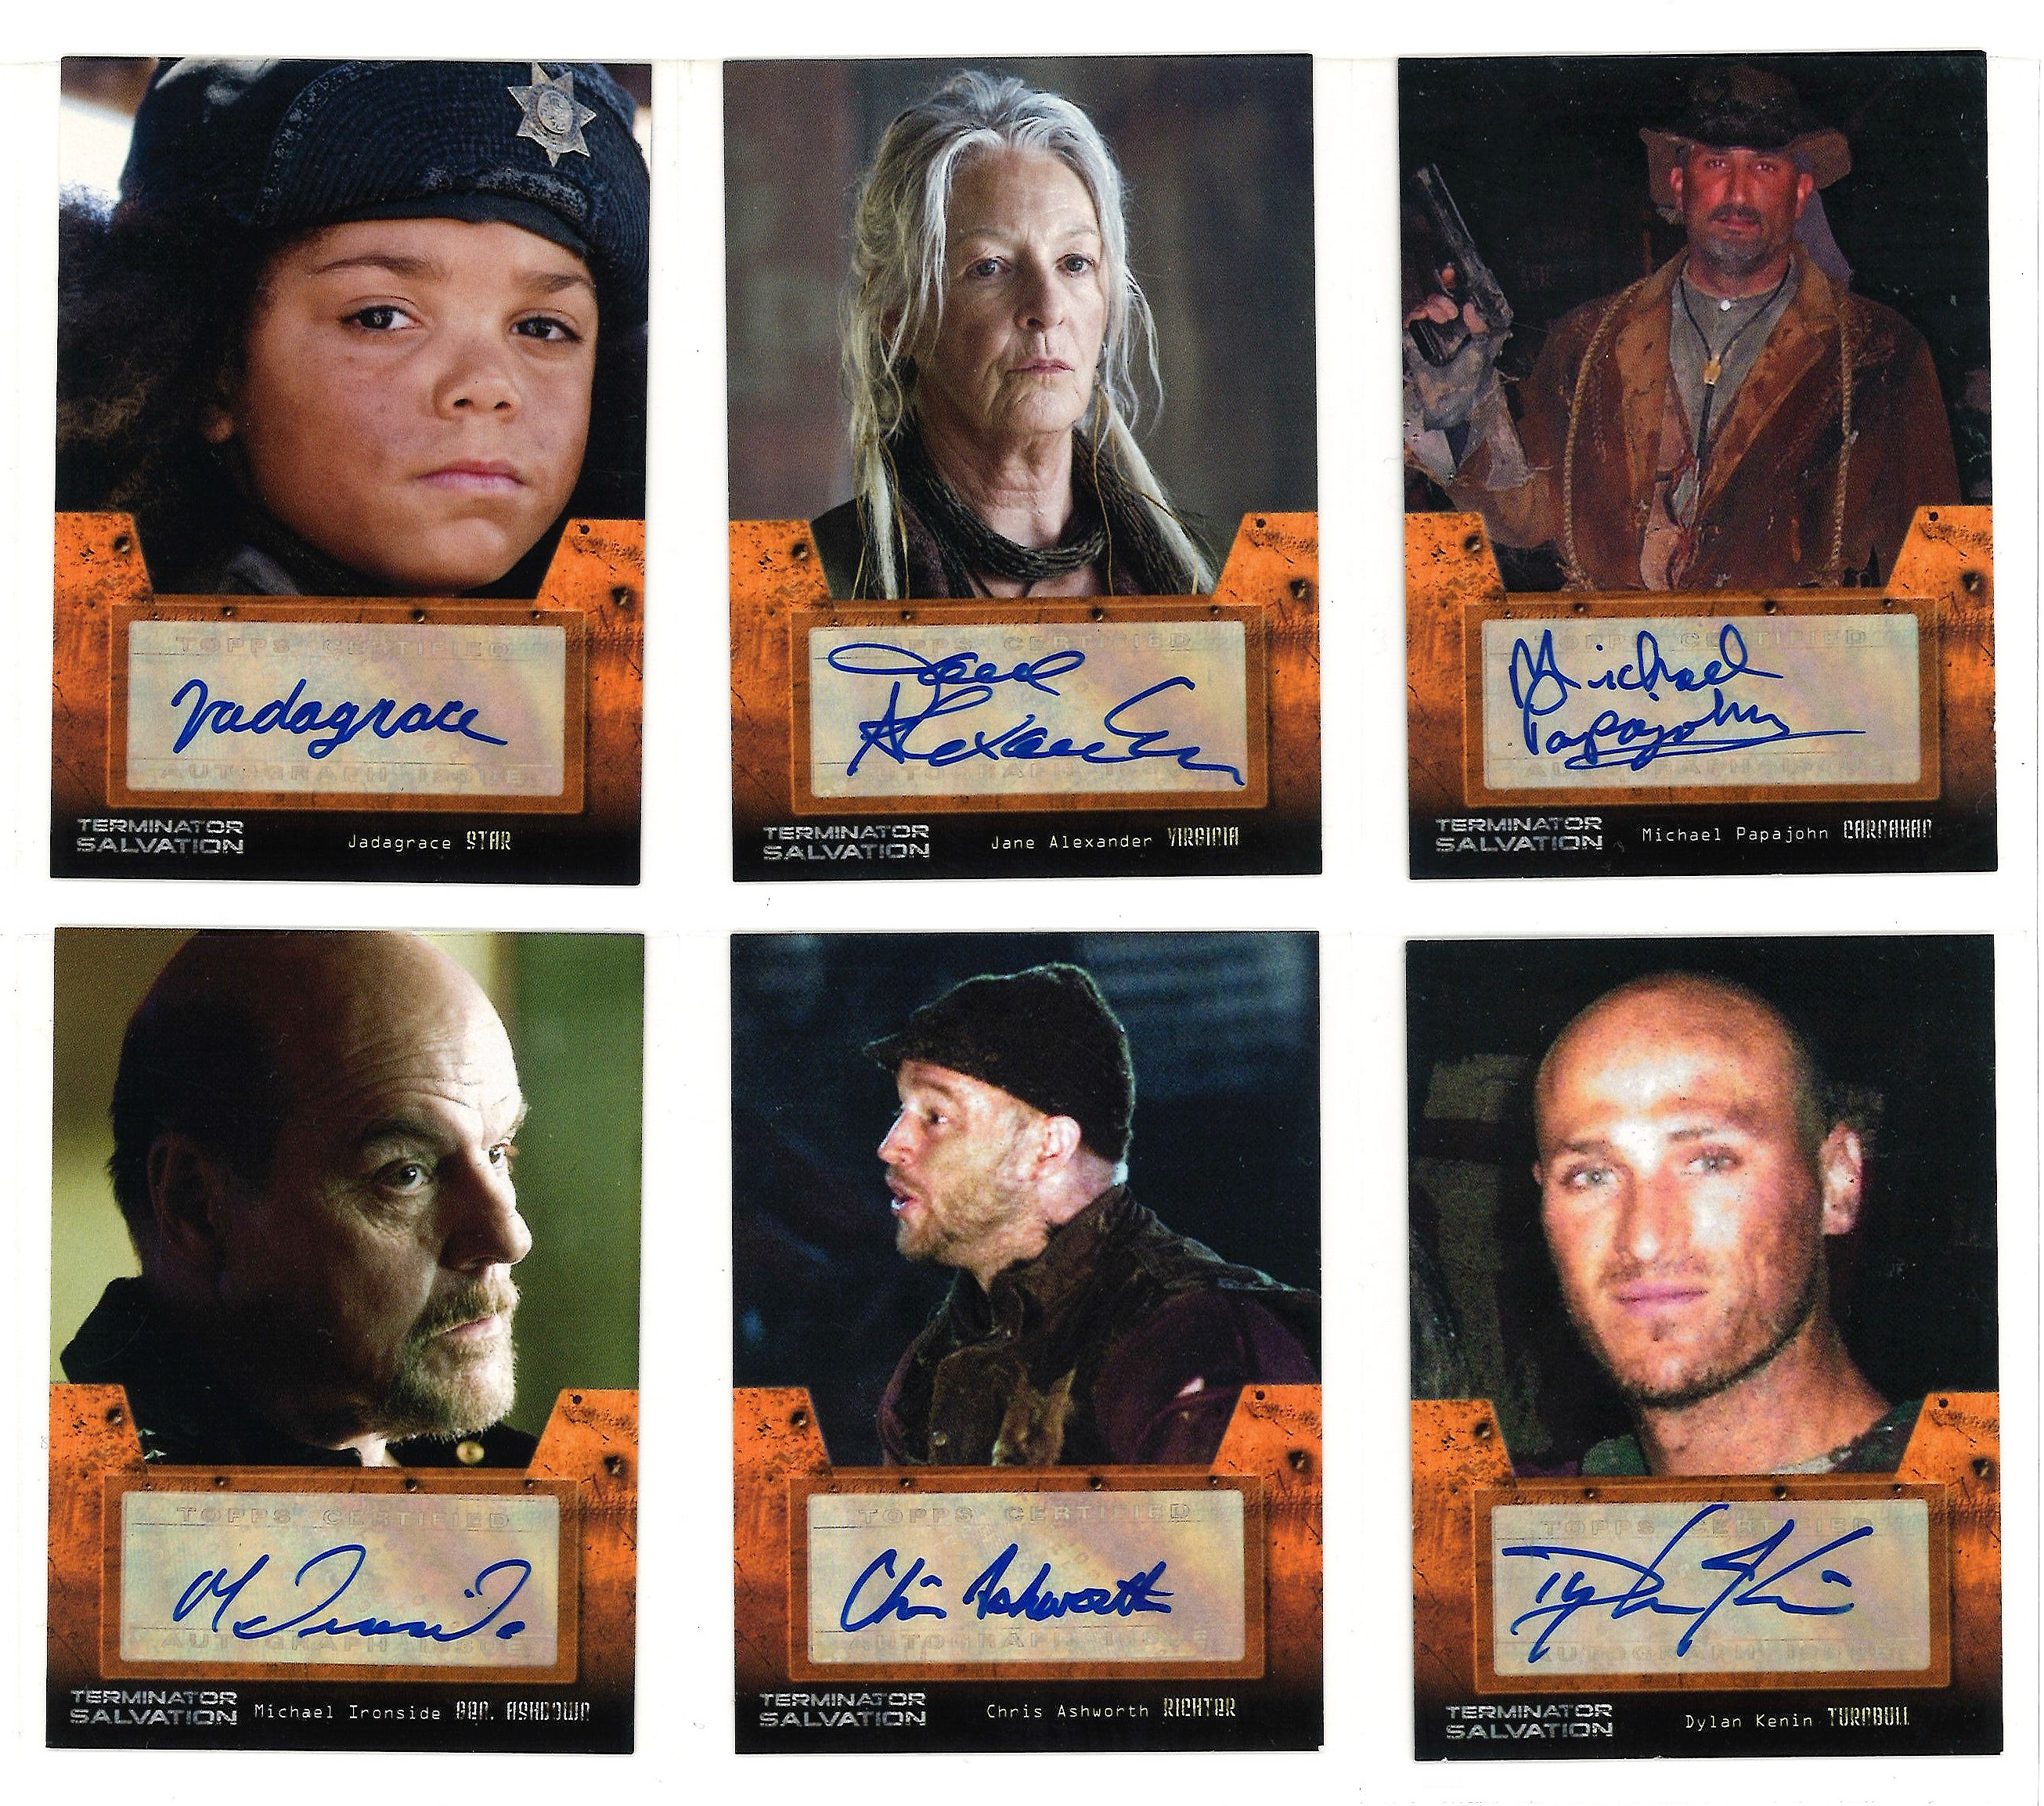 Lot 4 - Terminator Salvation Limited edition collection of 6 autographed Topps trading cards. Each card